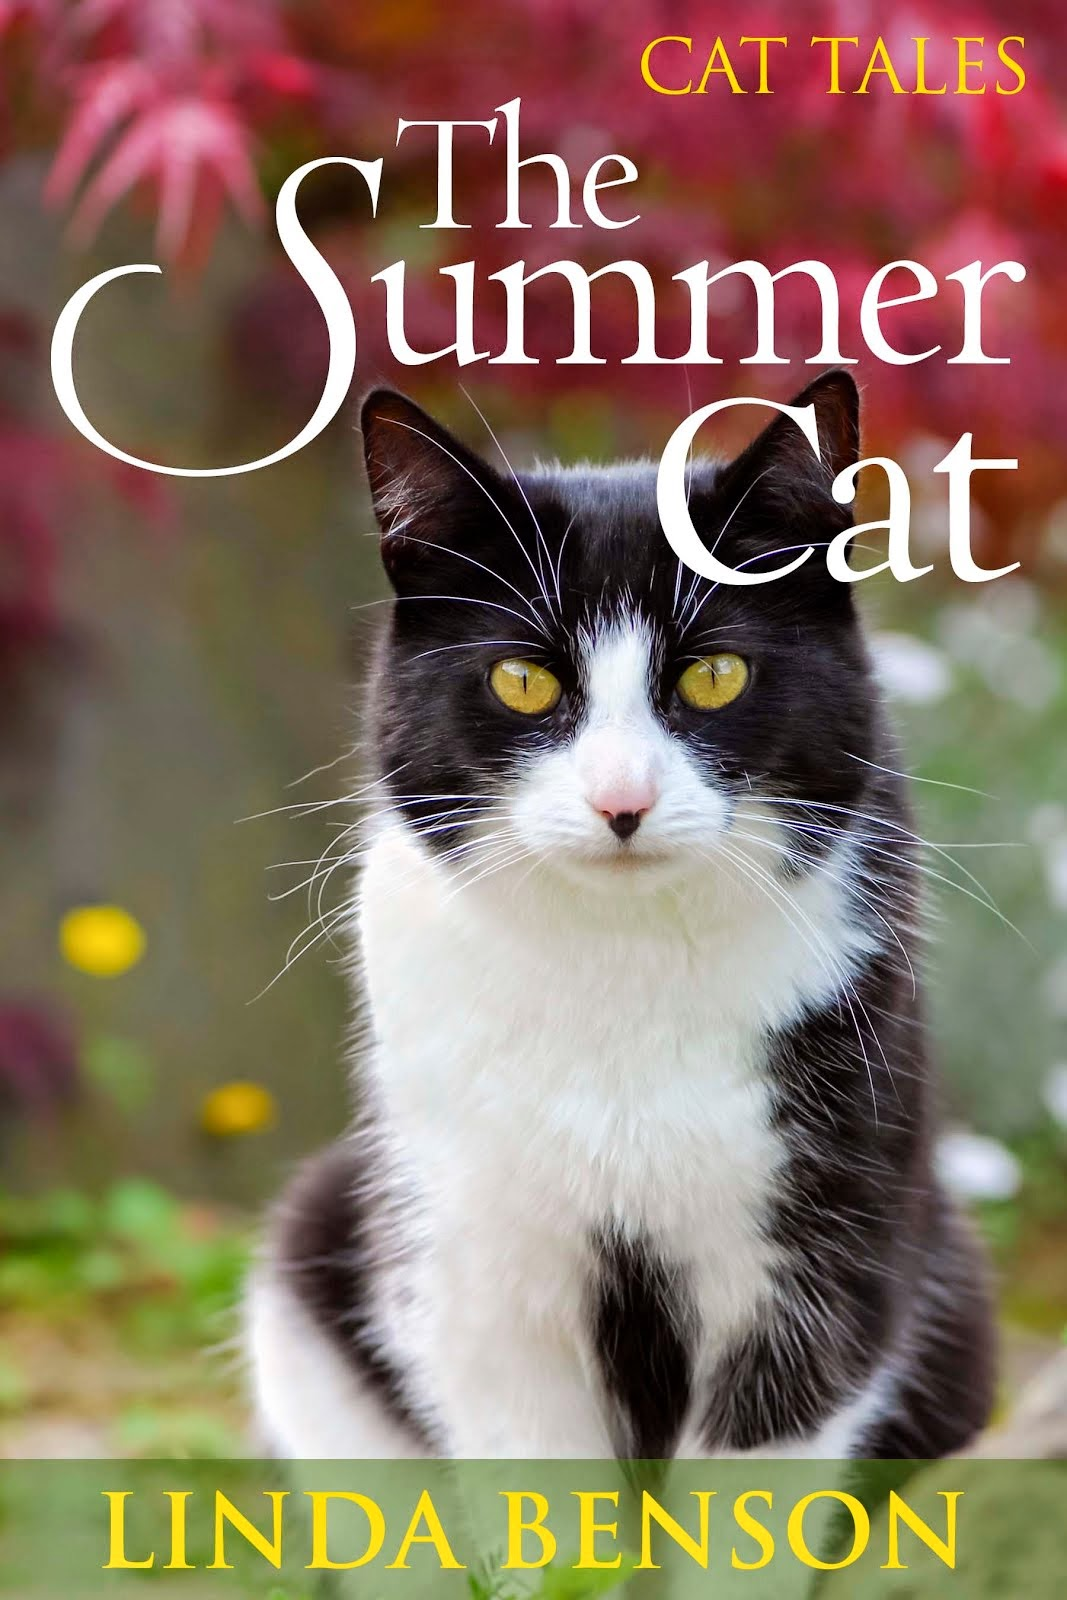 New Release - The Summer Cat - only $0.99